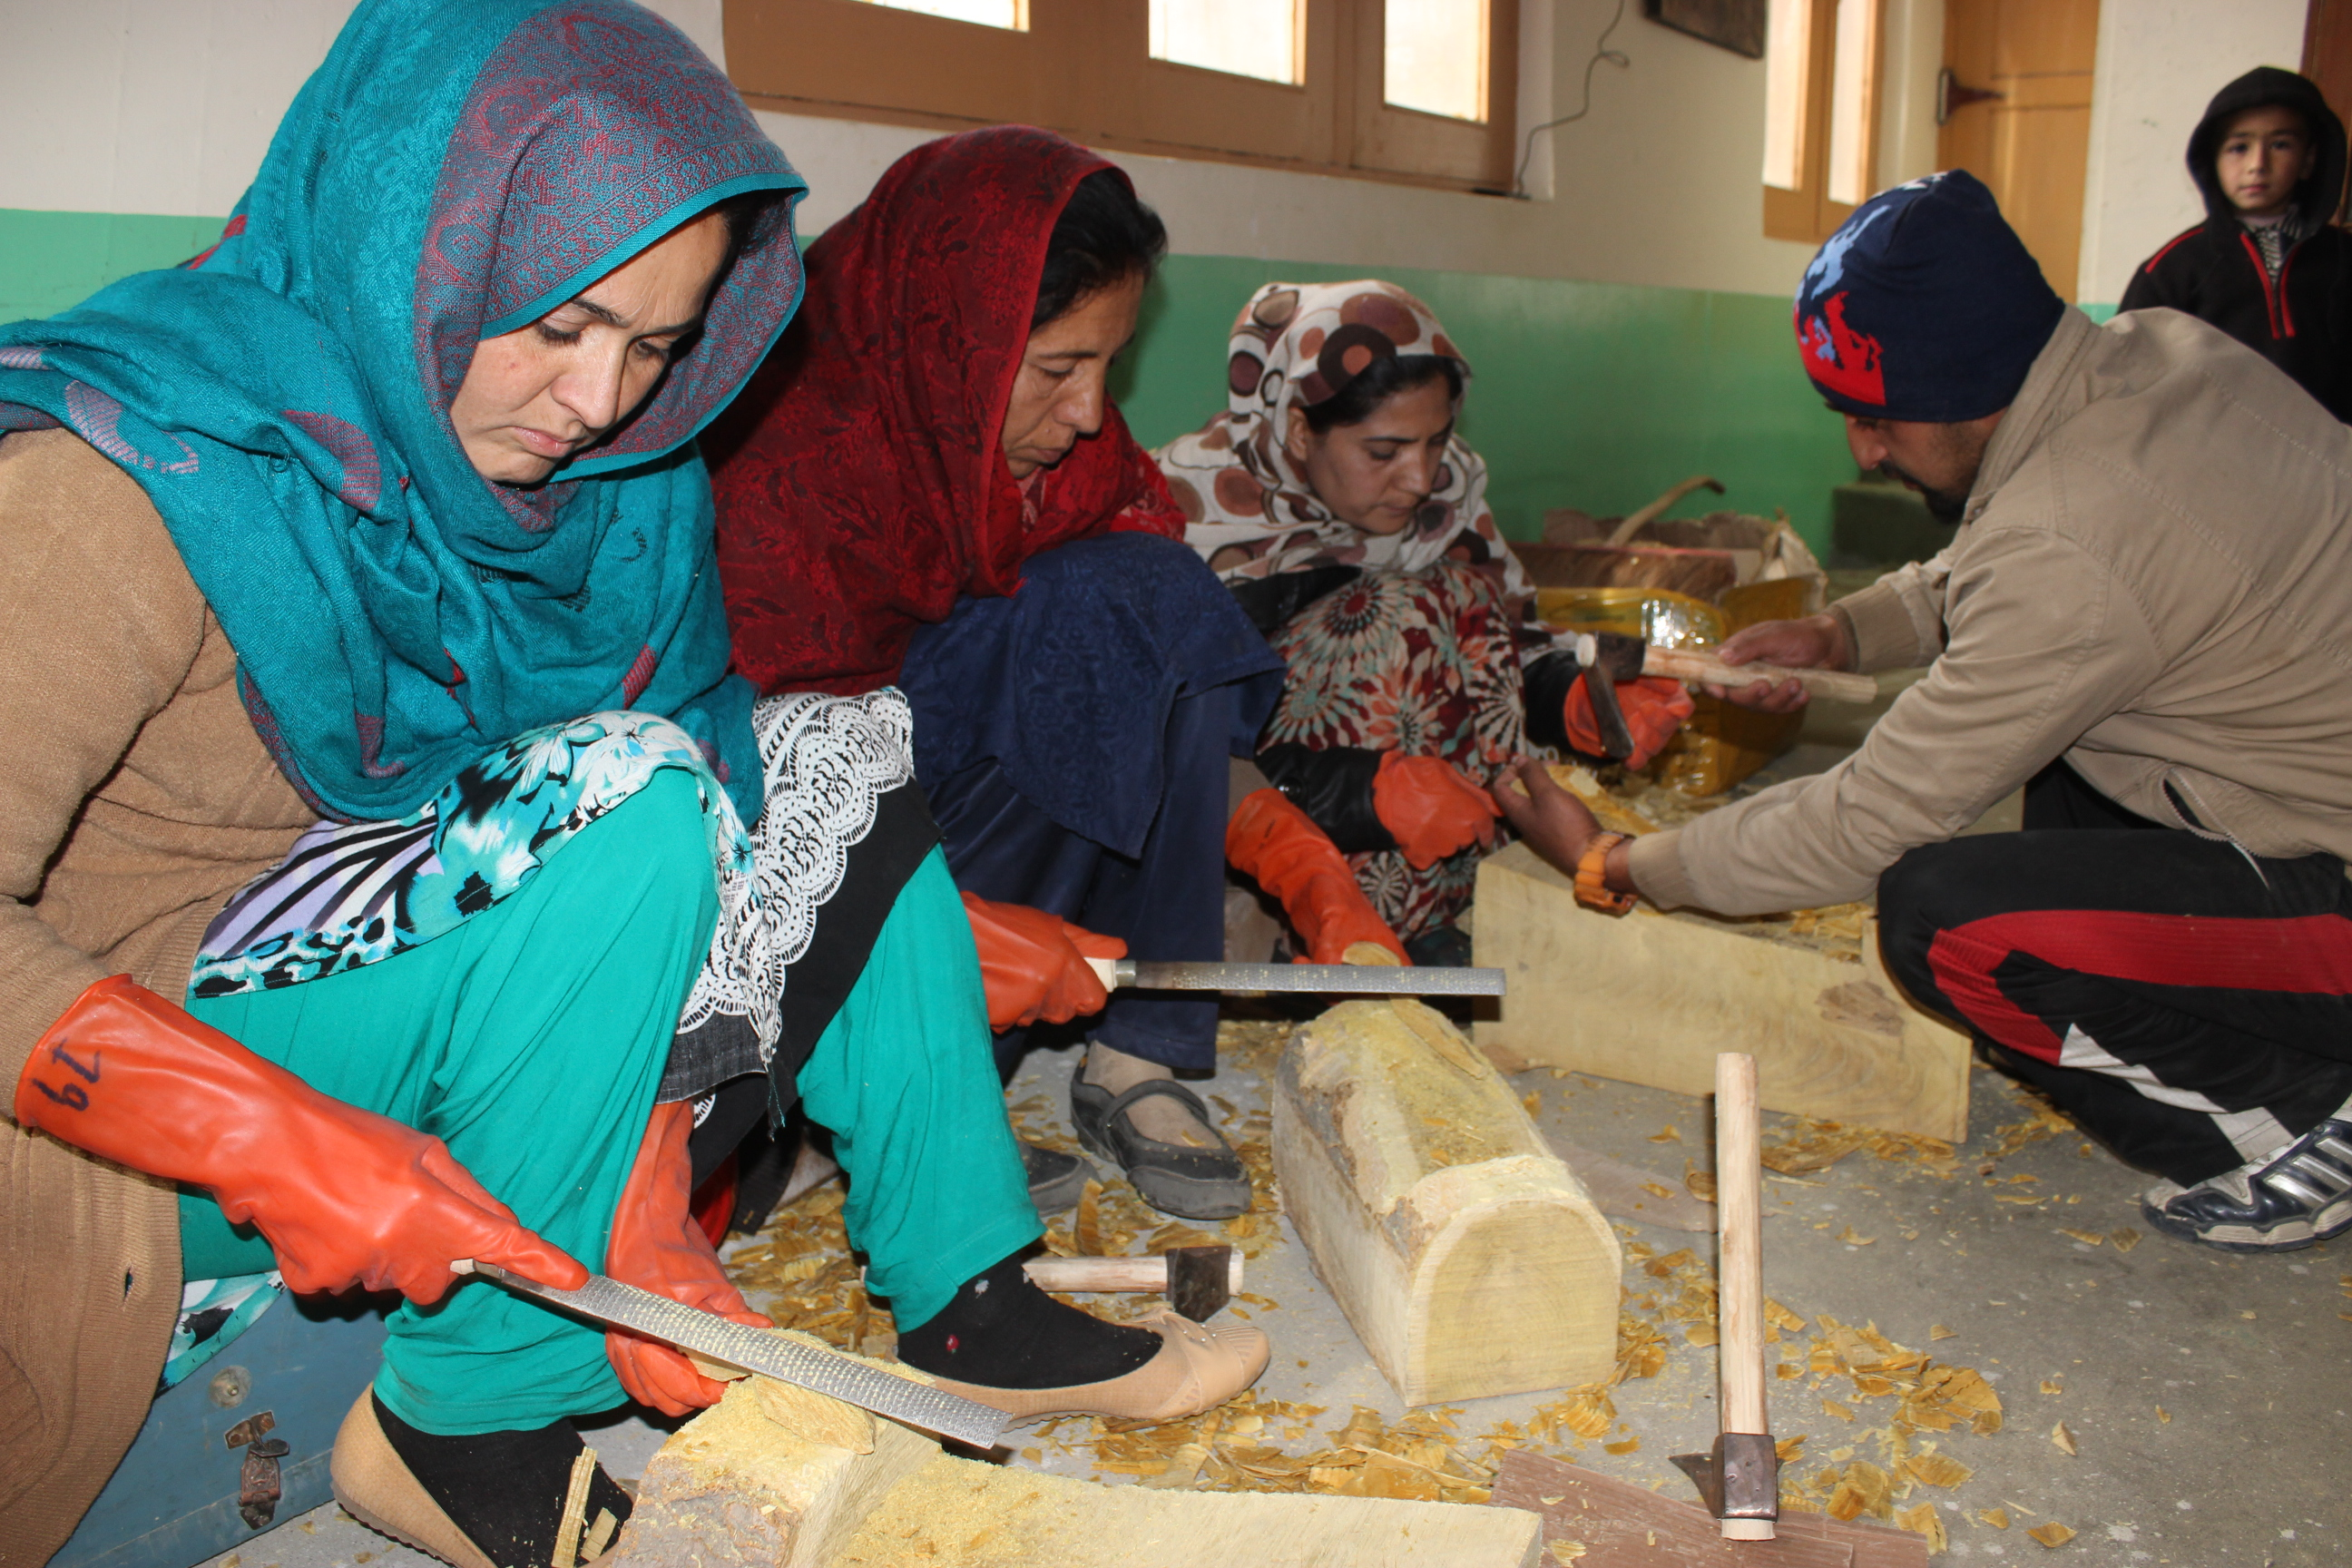 Hunza women pursuing skills in wood carving